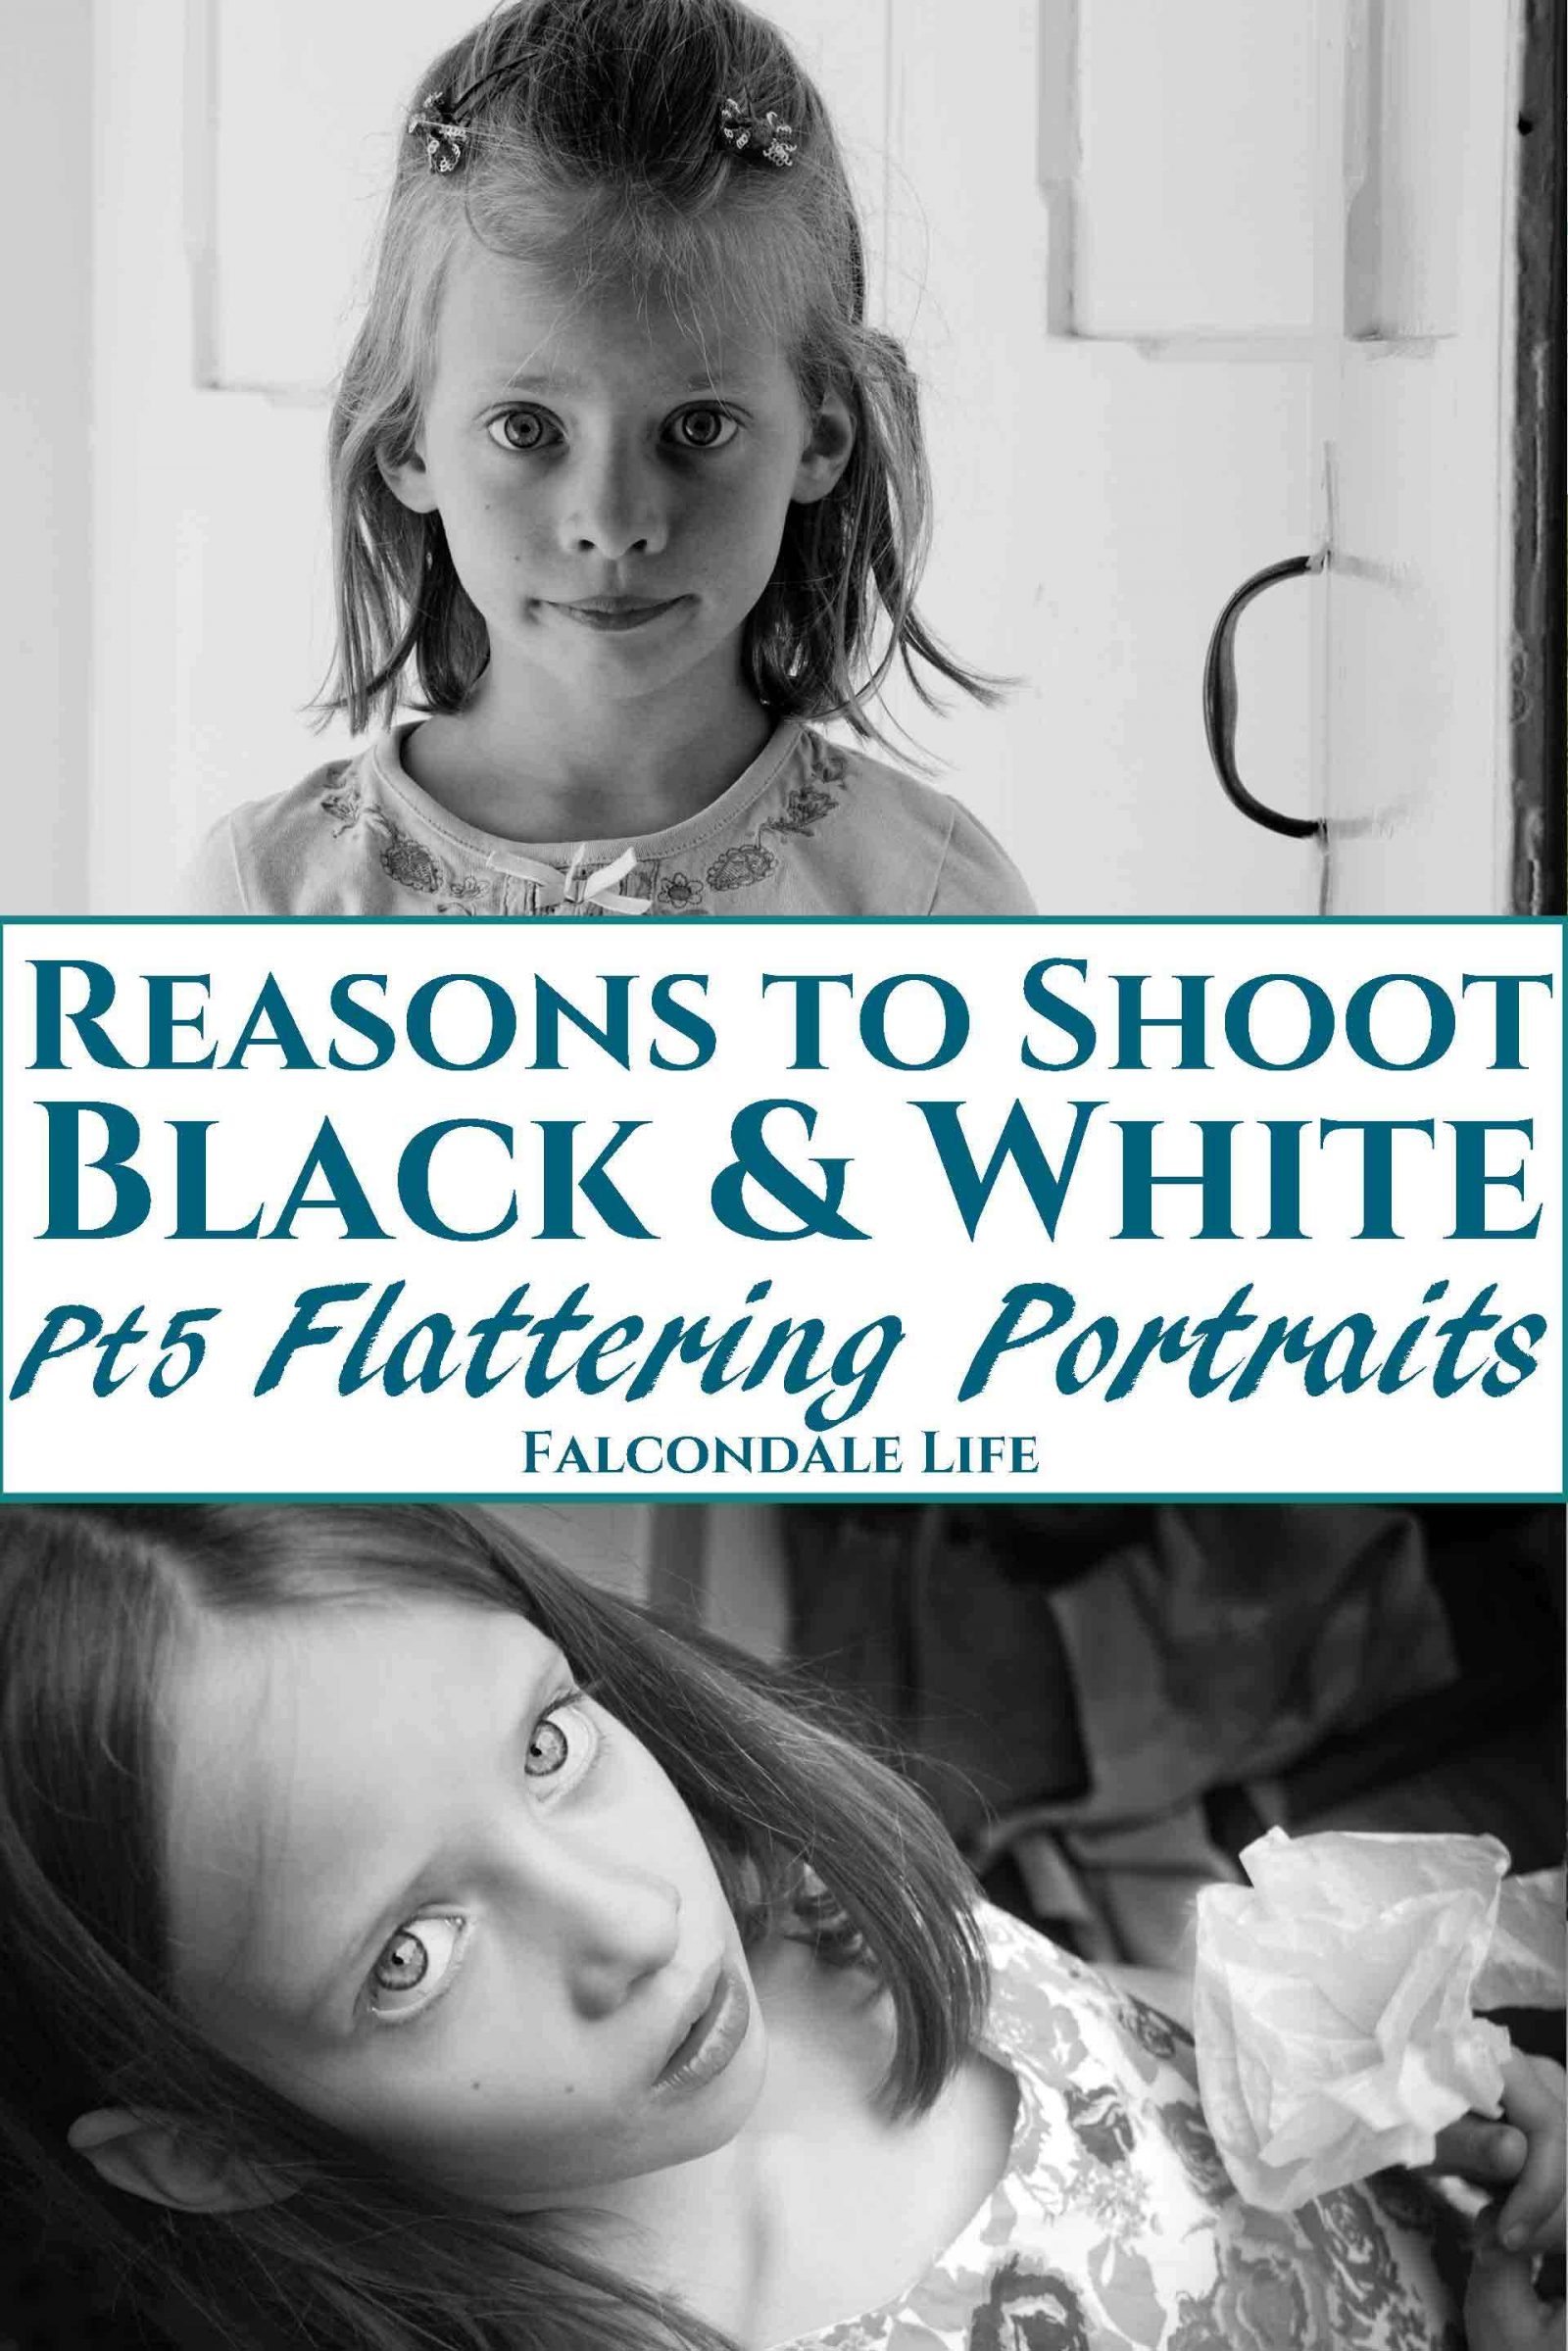 Reasons to shoot black and white part 5, Flattering portraits. More reasons to choose black and white in photography, this time to make more flattering portraits by using monochrome. Flatter skin tone and make a timeless and enduring image by switching to a black and white photo. Tips from Falcondalejan. Image description: little girl portraits and blog title banner.